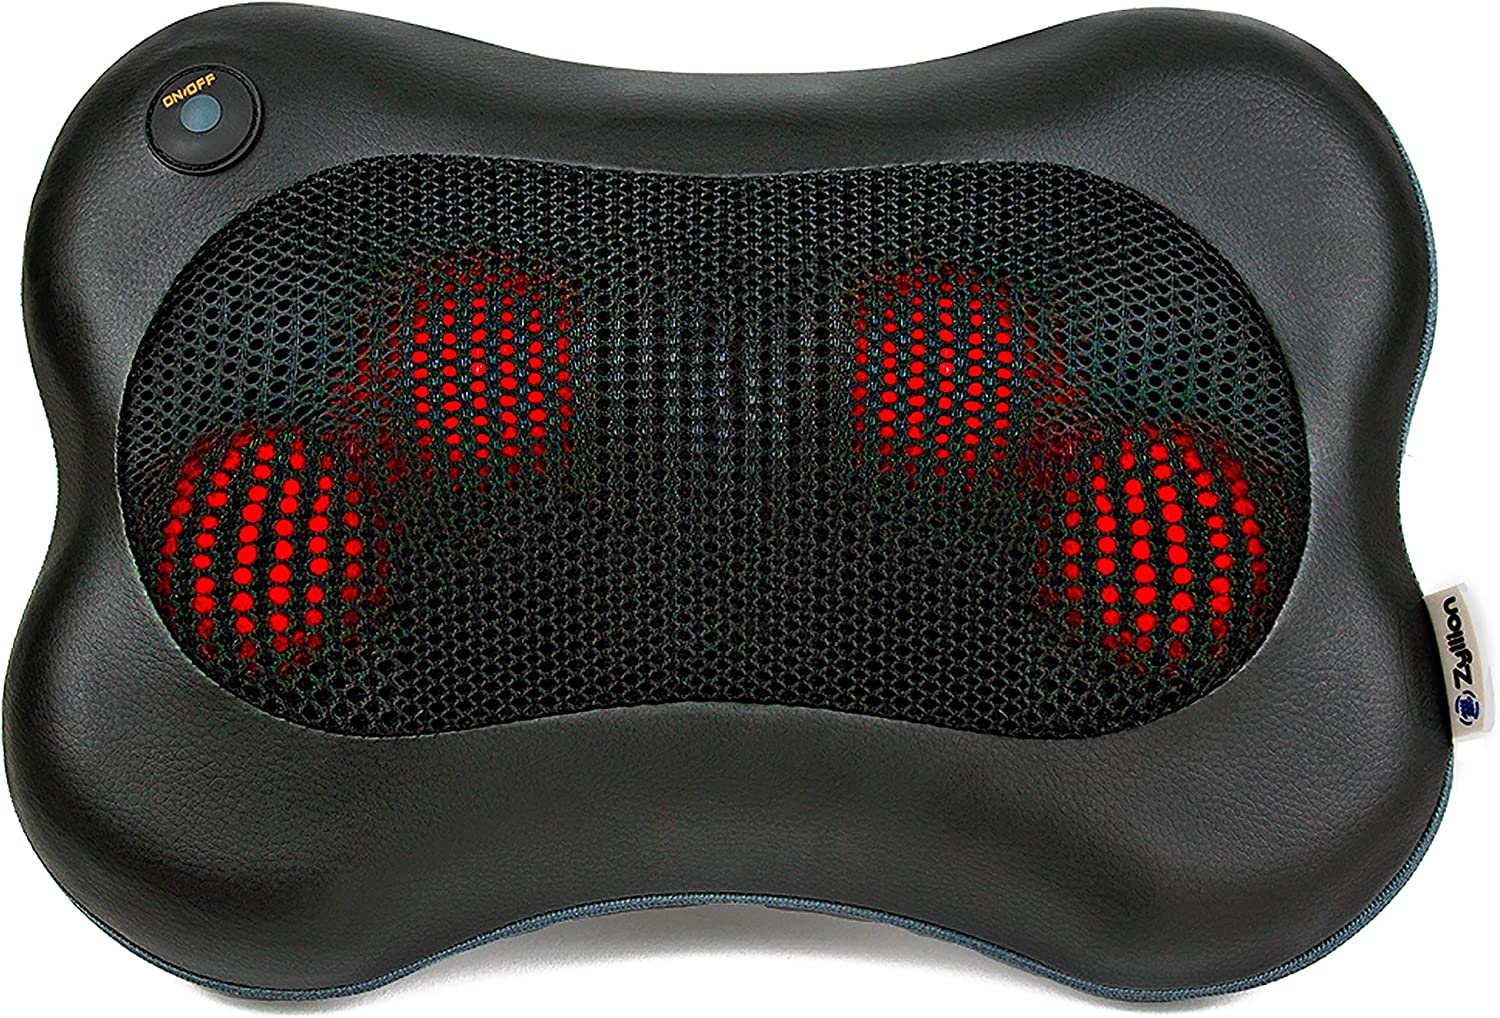 Best Seat Cushion for Buttock Pain